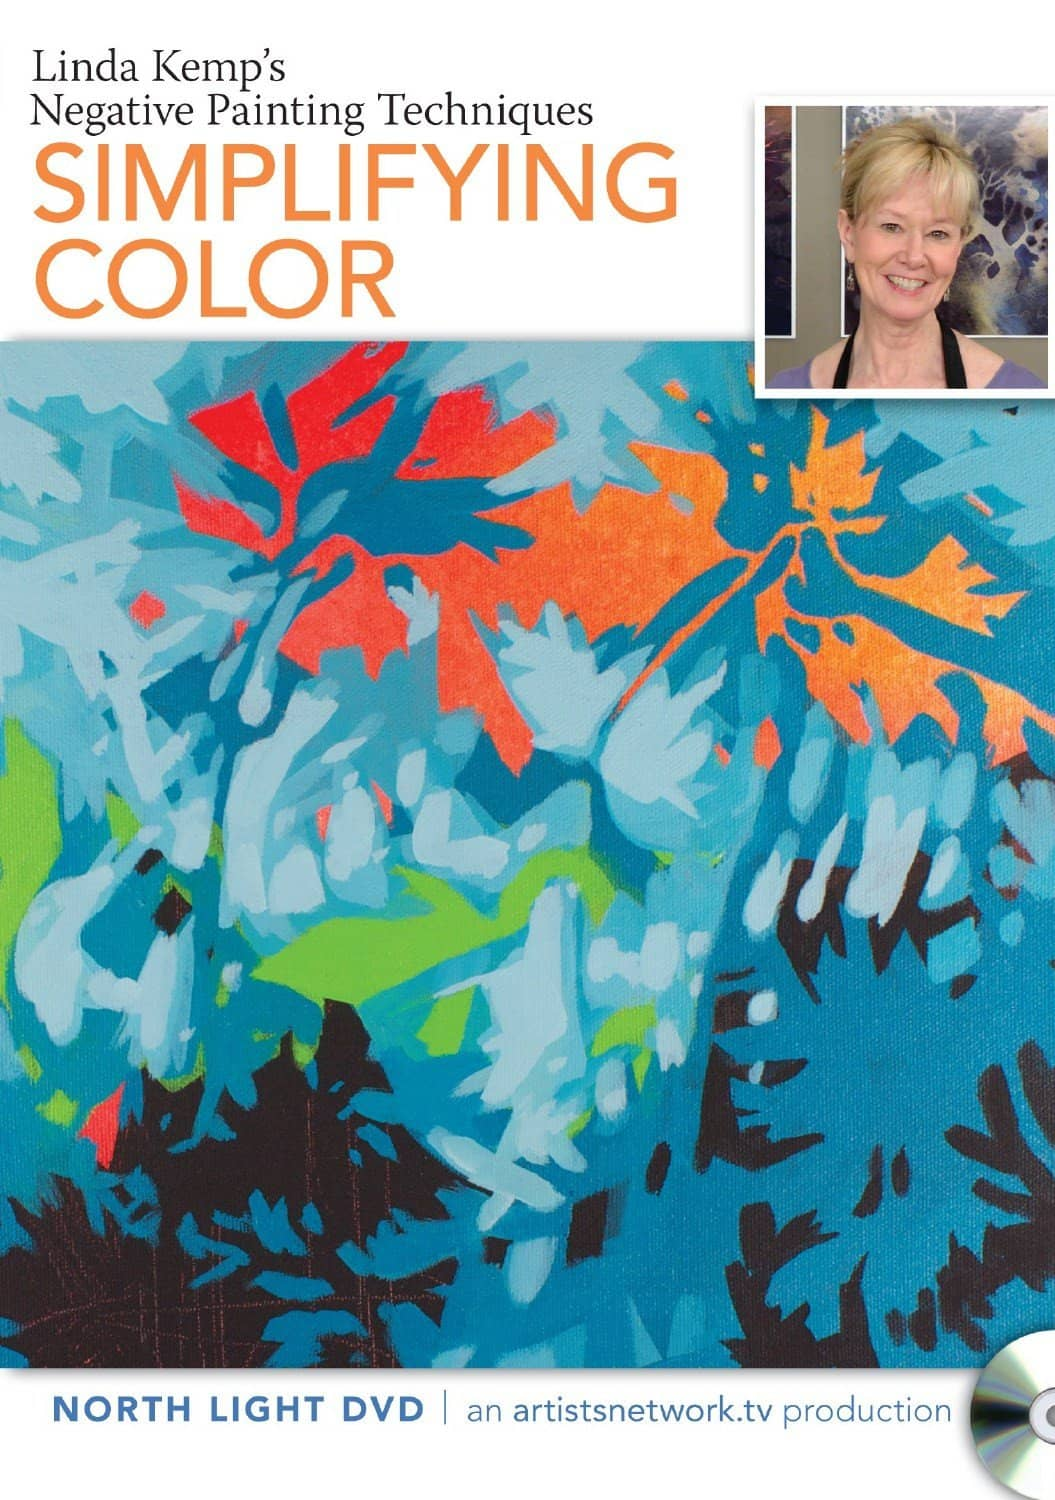 Linda Kemp's Negative Painting Techniques: Simplifying Color Art Instruction Video-DVD from Creative Catalyst